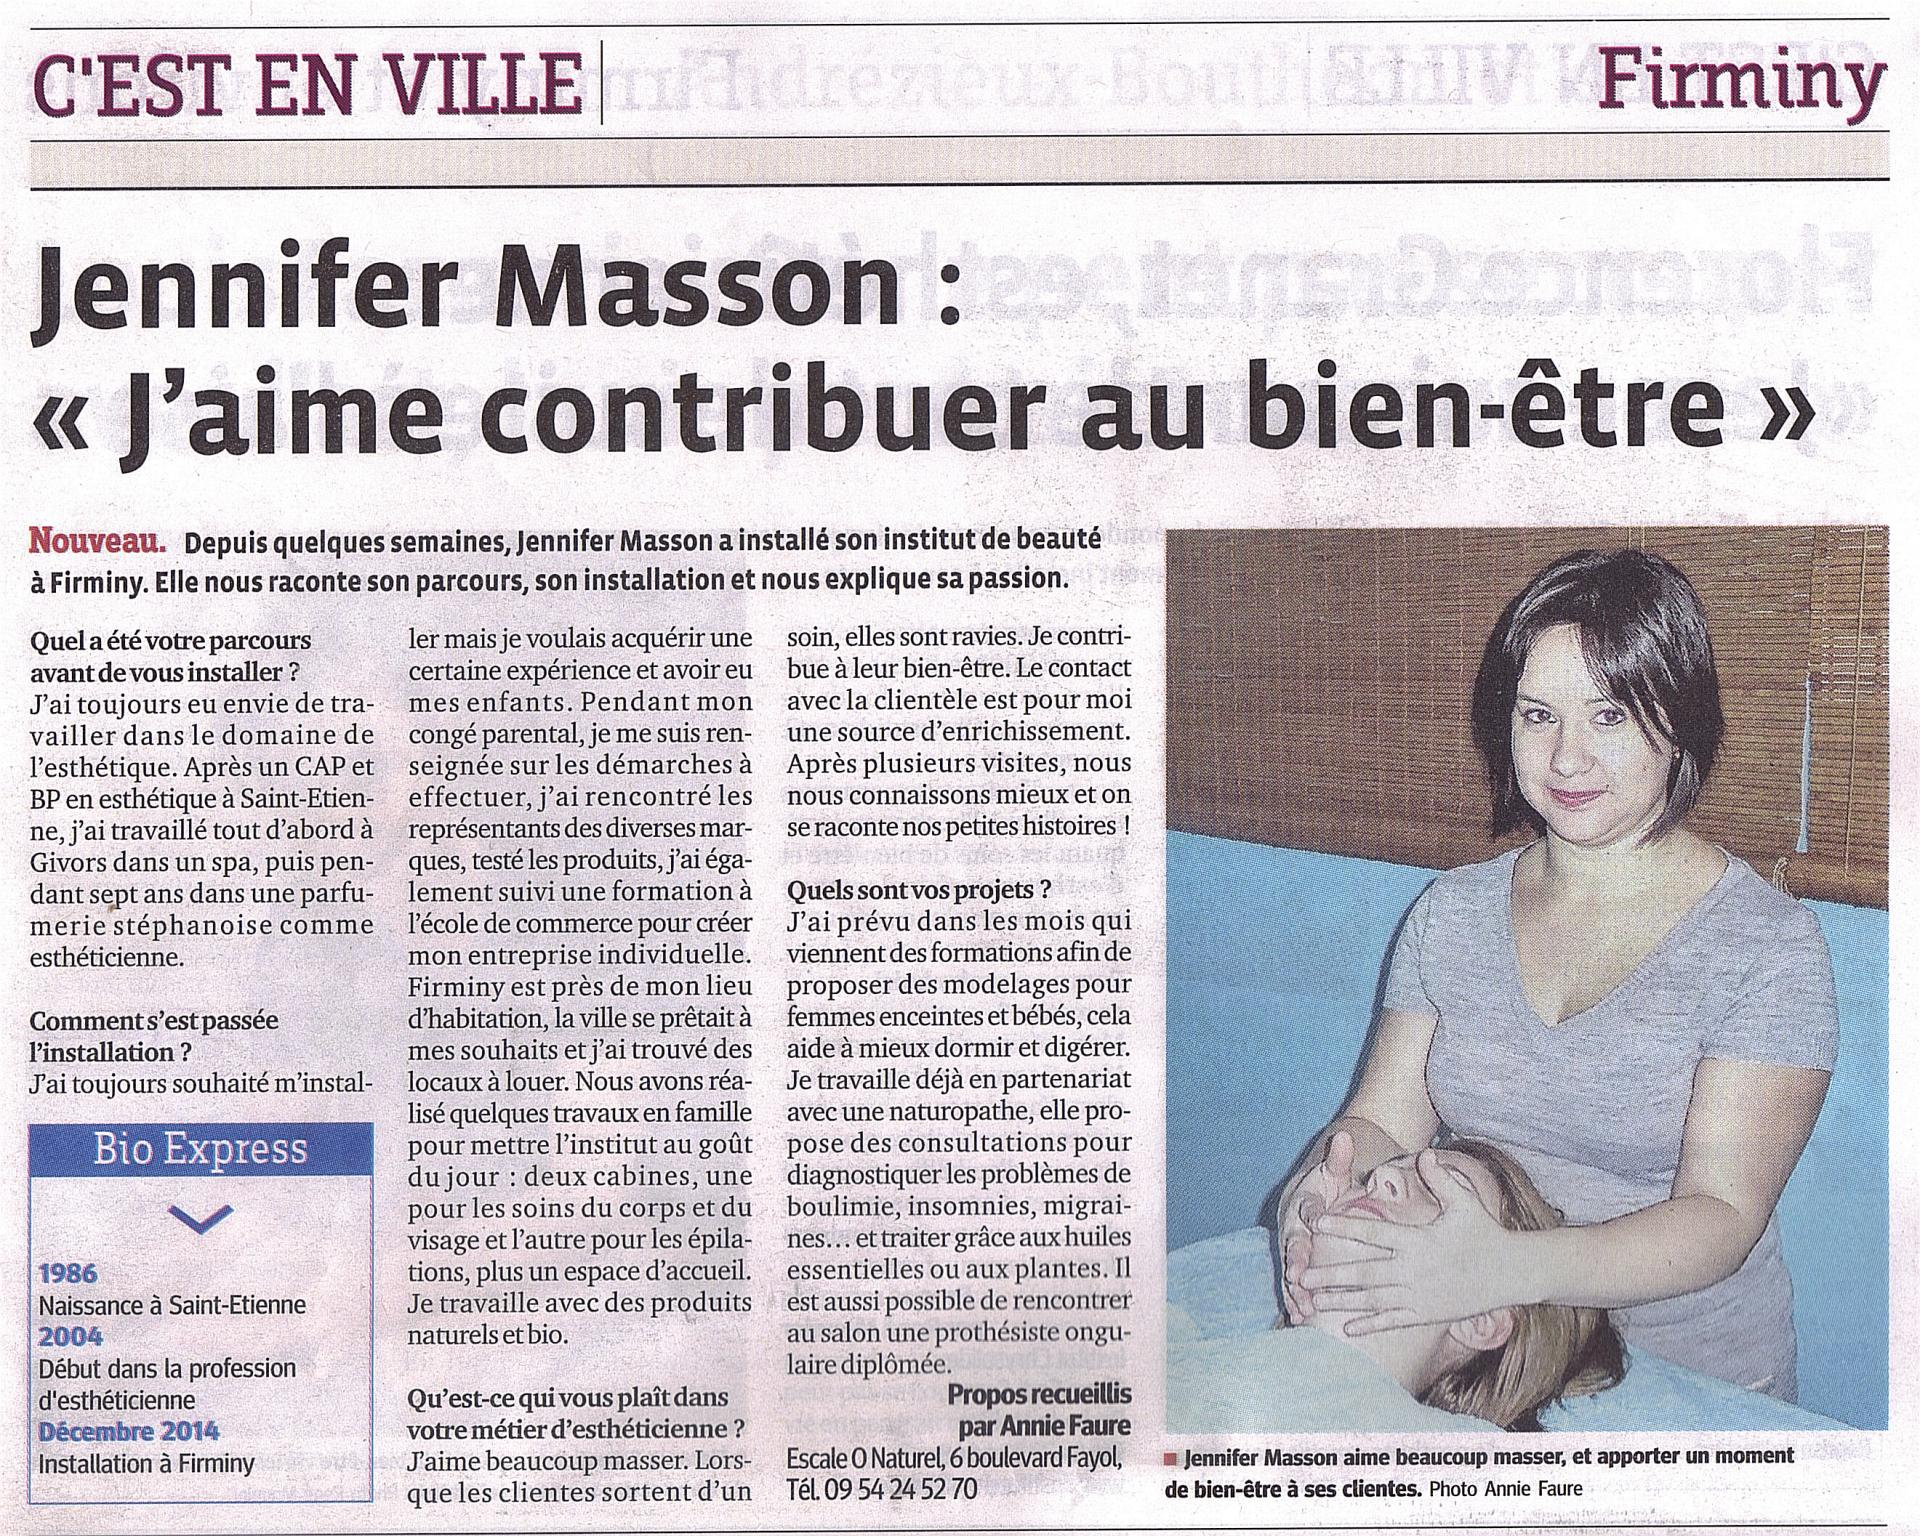 MASSON JENNIFER